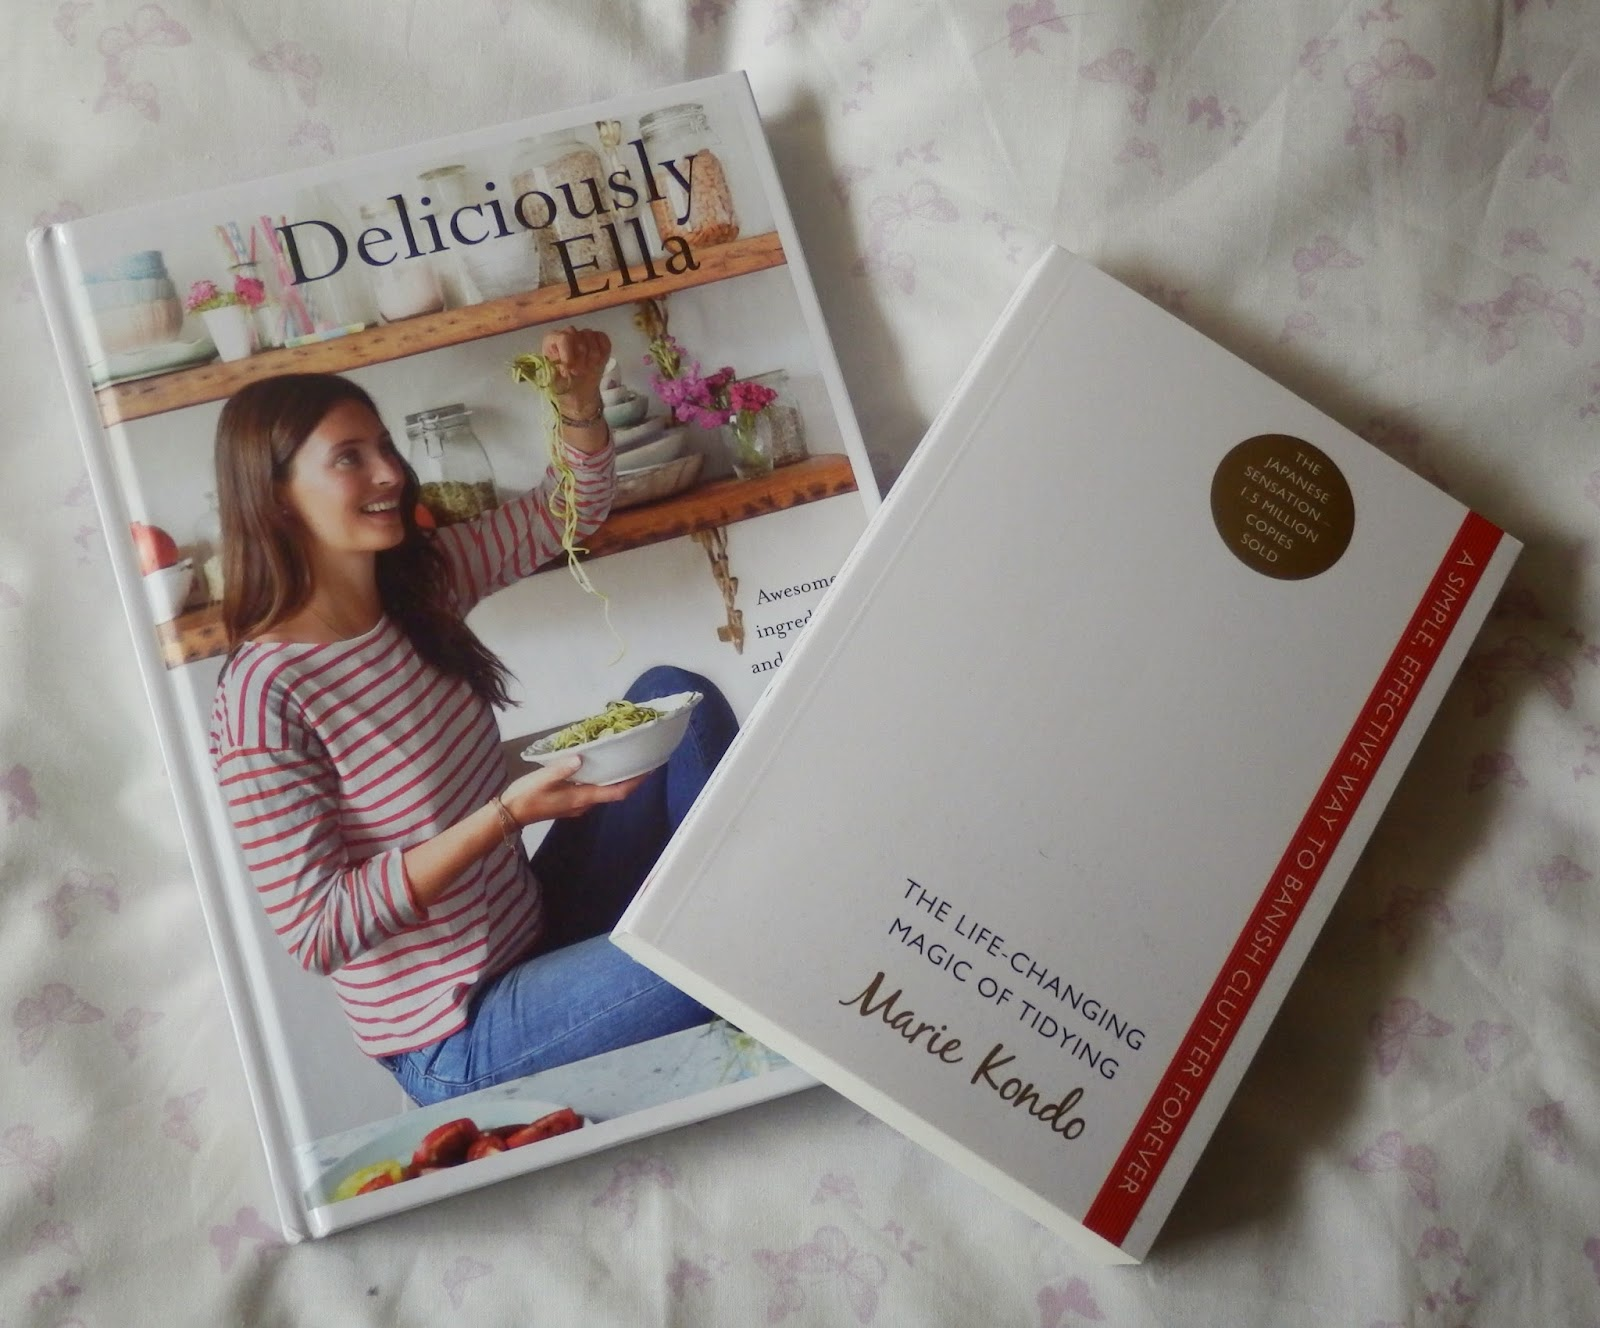 Deliciously Ella by Ella Woodward & The Life-Changing Magic of Tidying by Marie Kondo